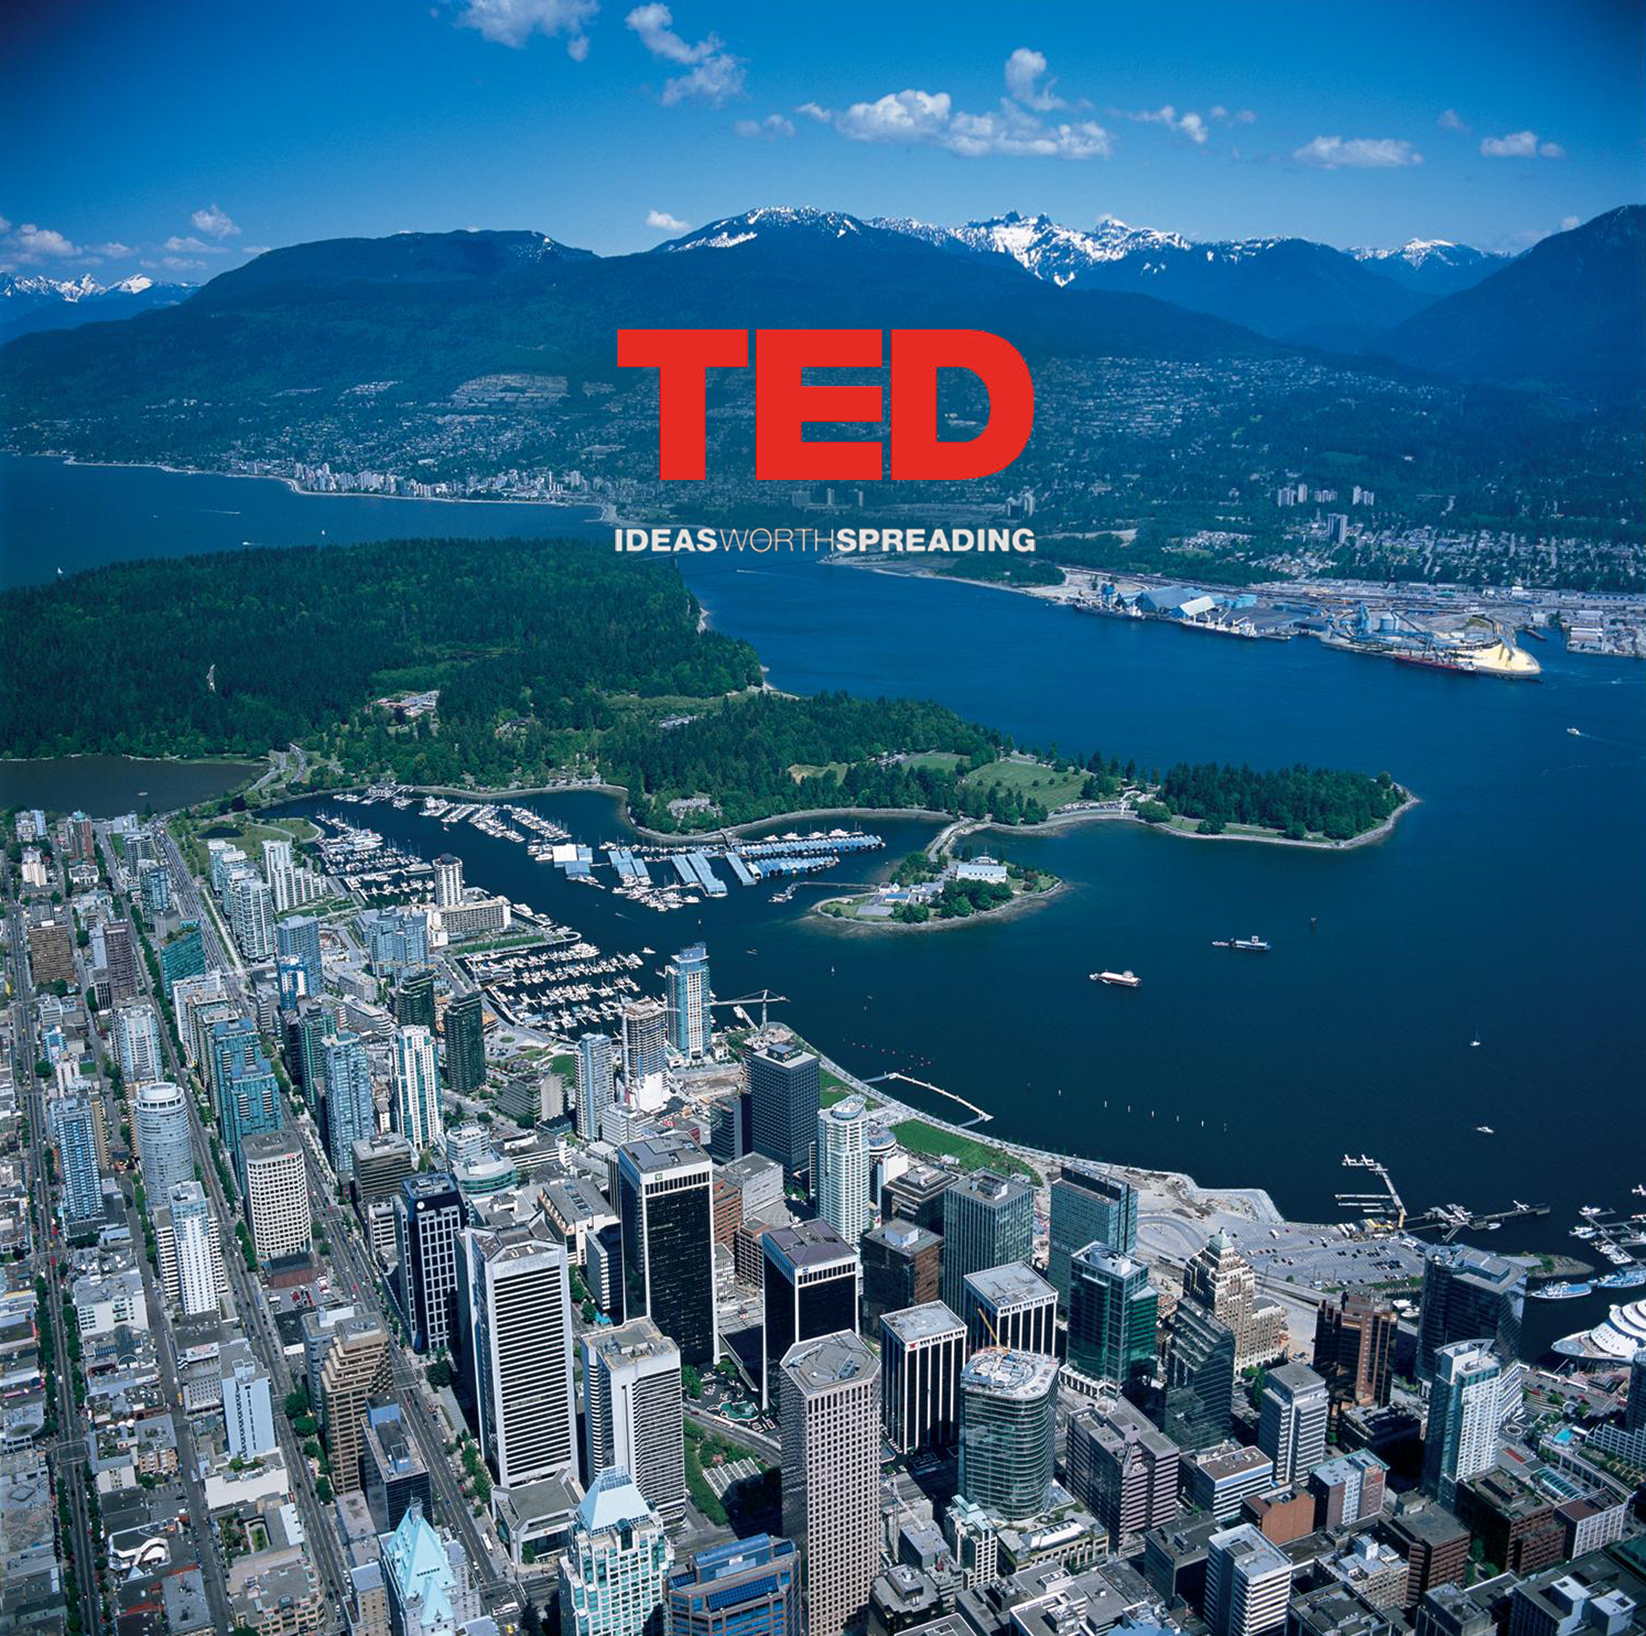 TEDvancouver The WOW Files: Renowned Intellectual Conference TEDTalks™ Moving To Vancouver March 2014